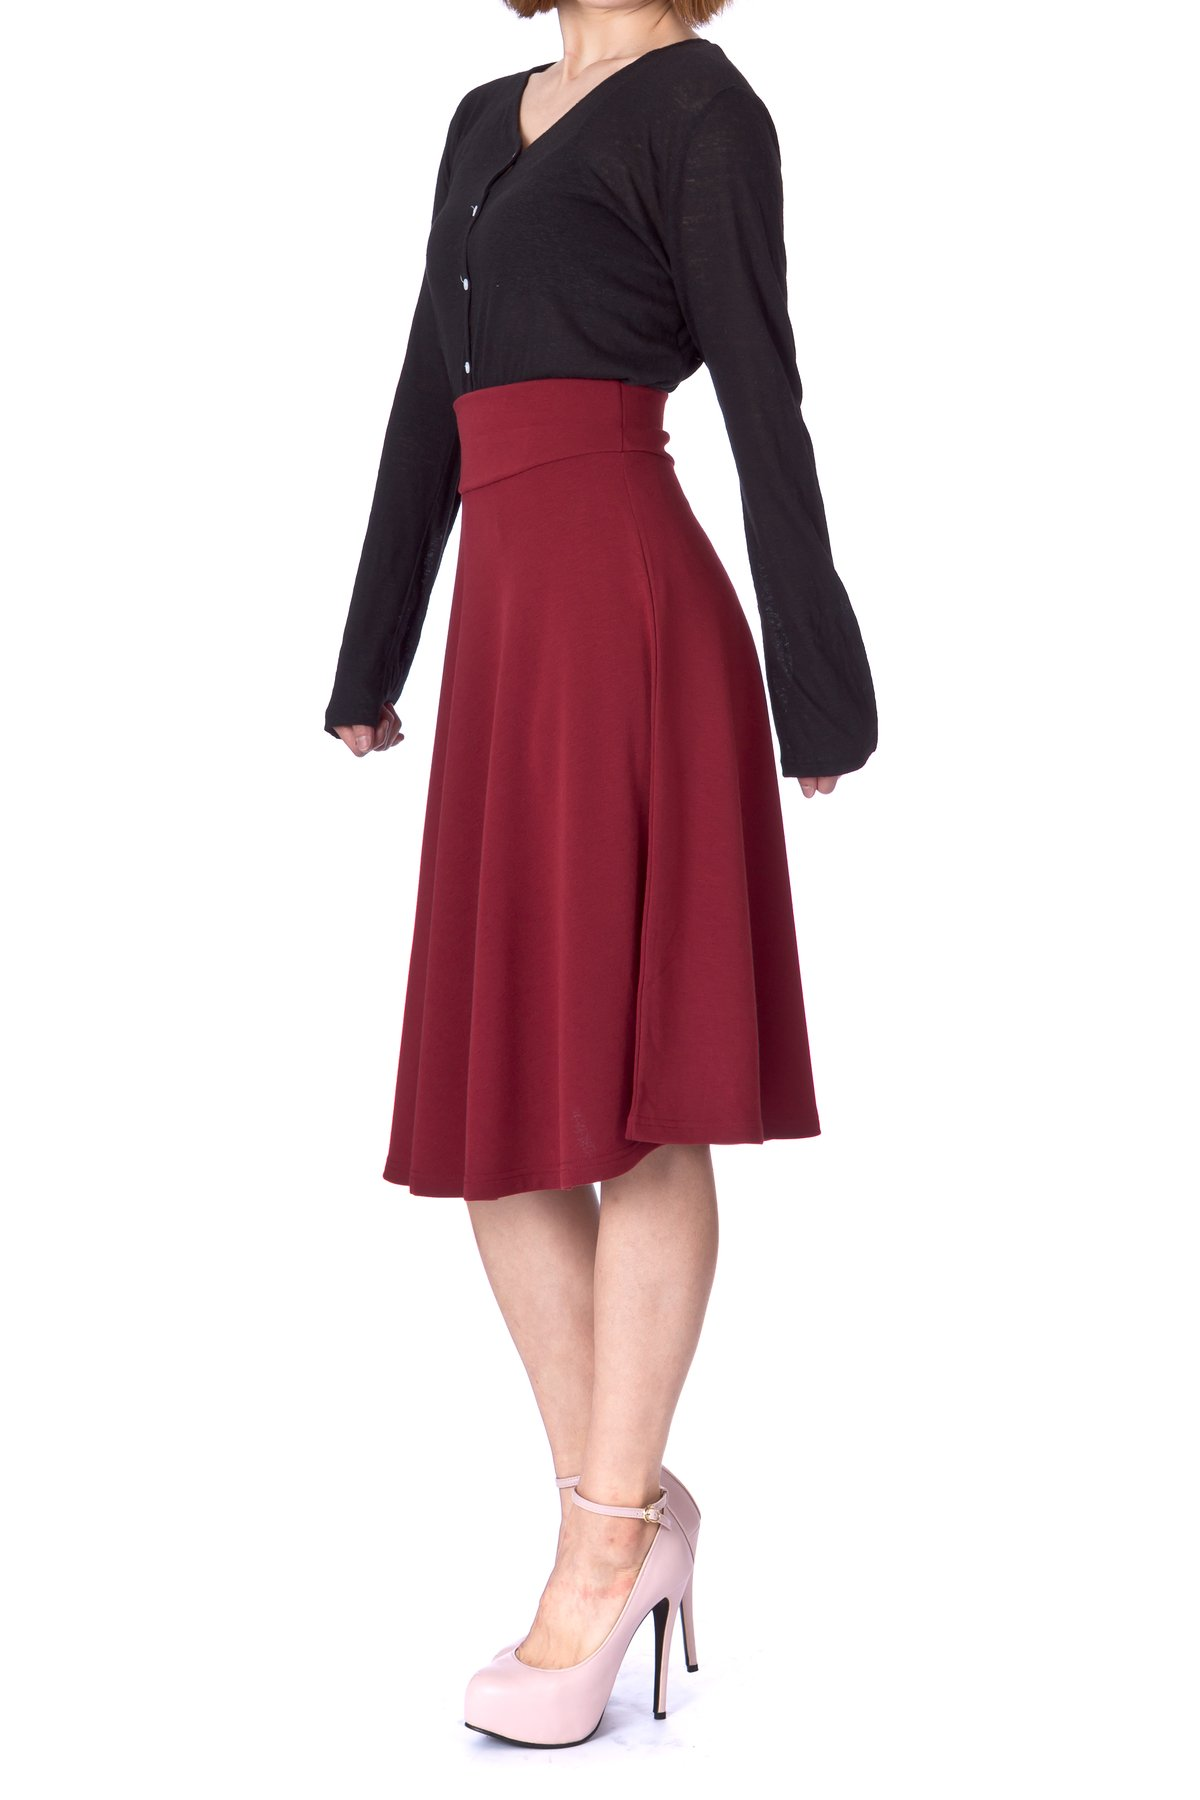 Stretch High Waist A line Flared Long Skirt Burgundy 03